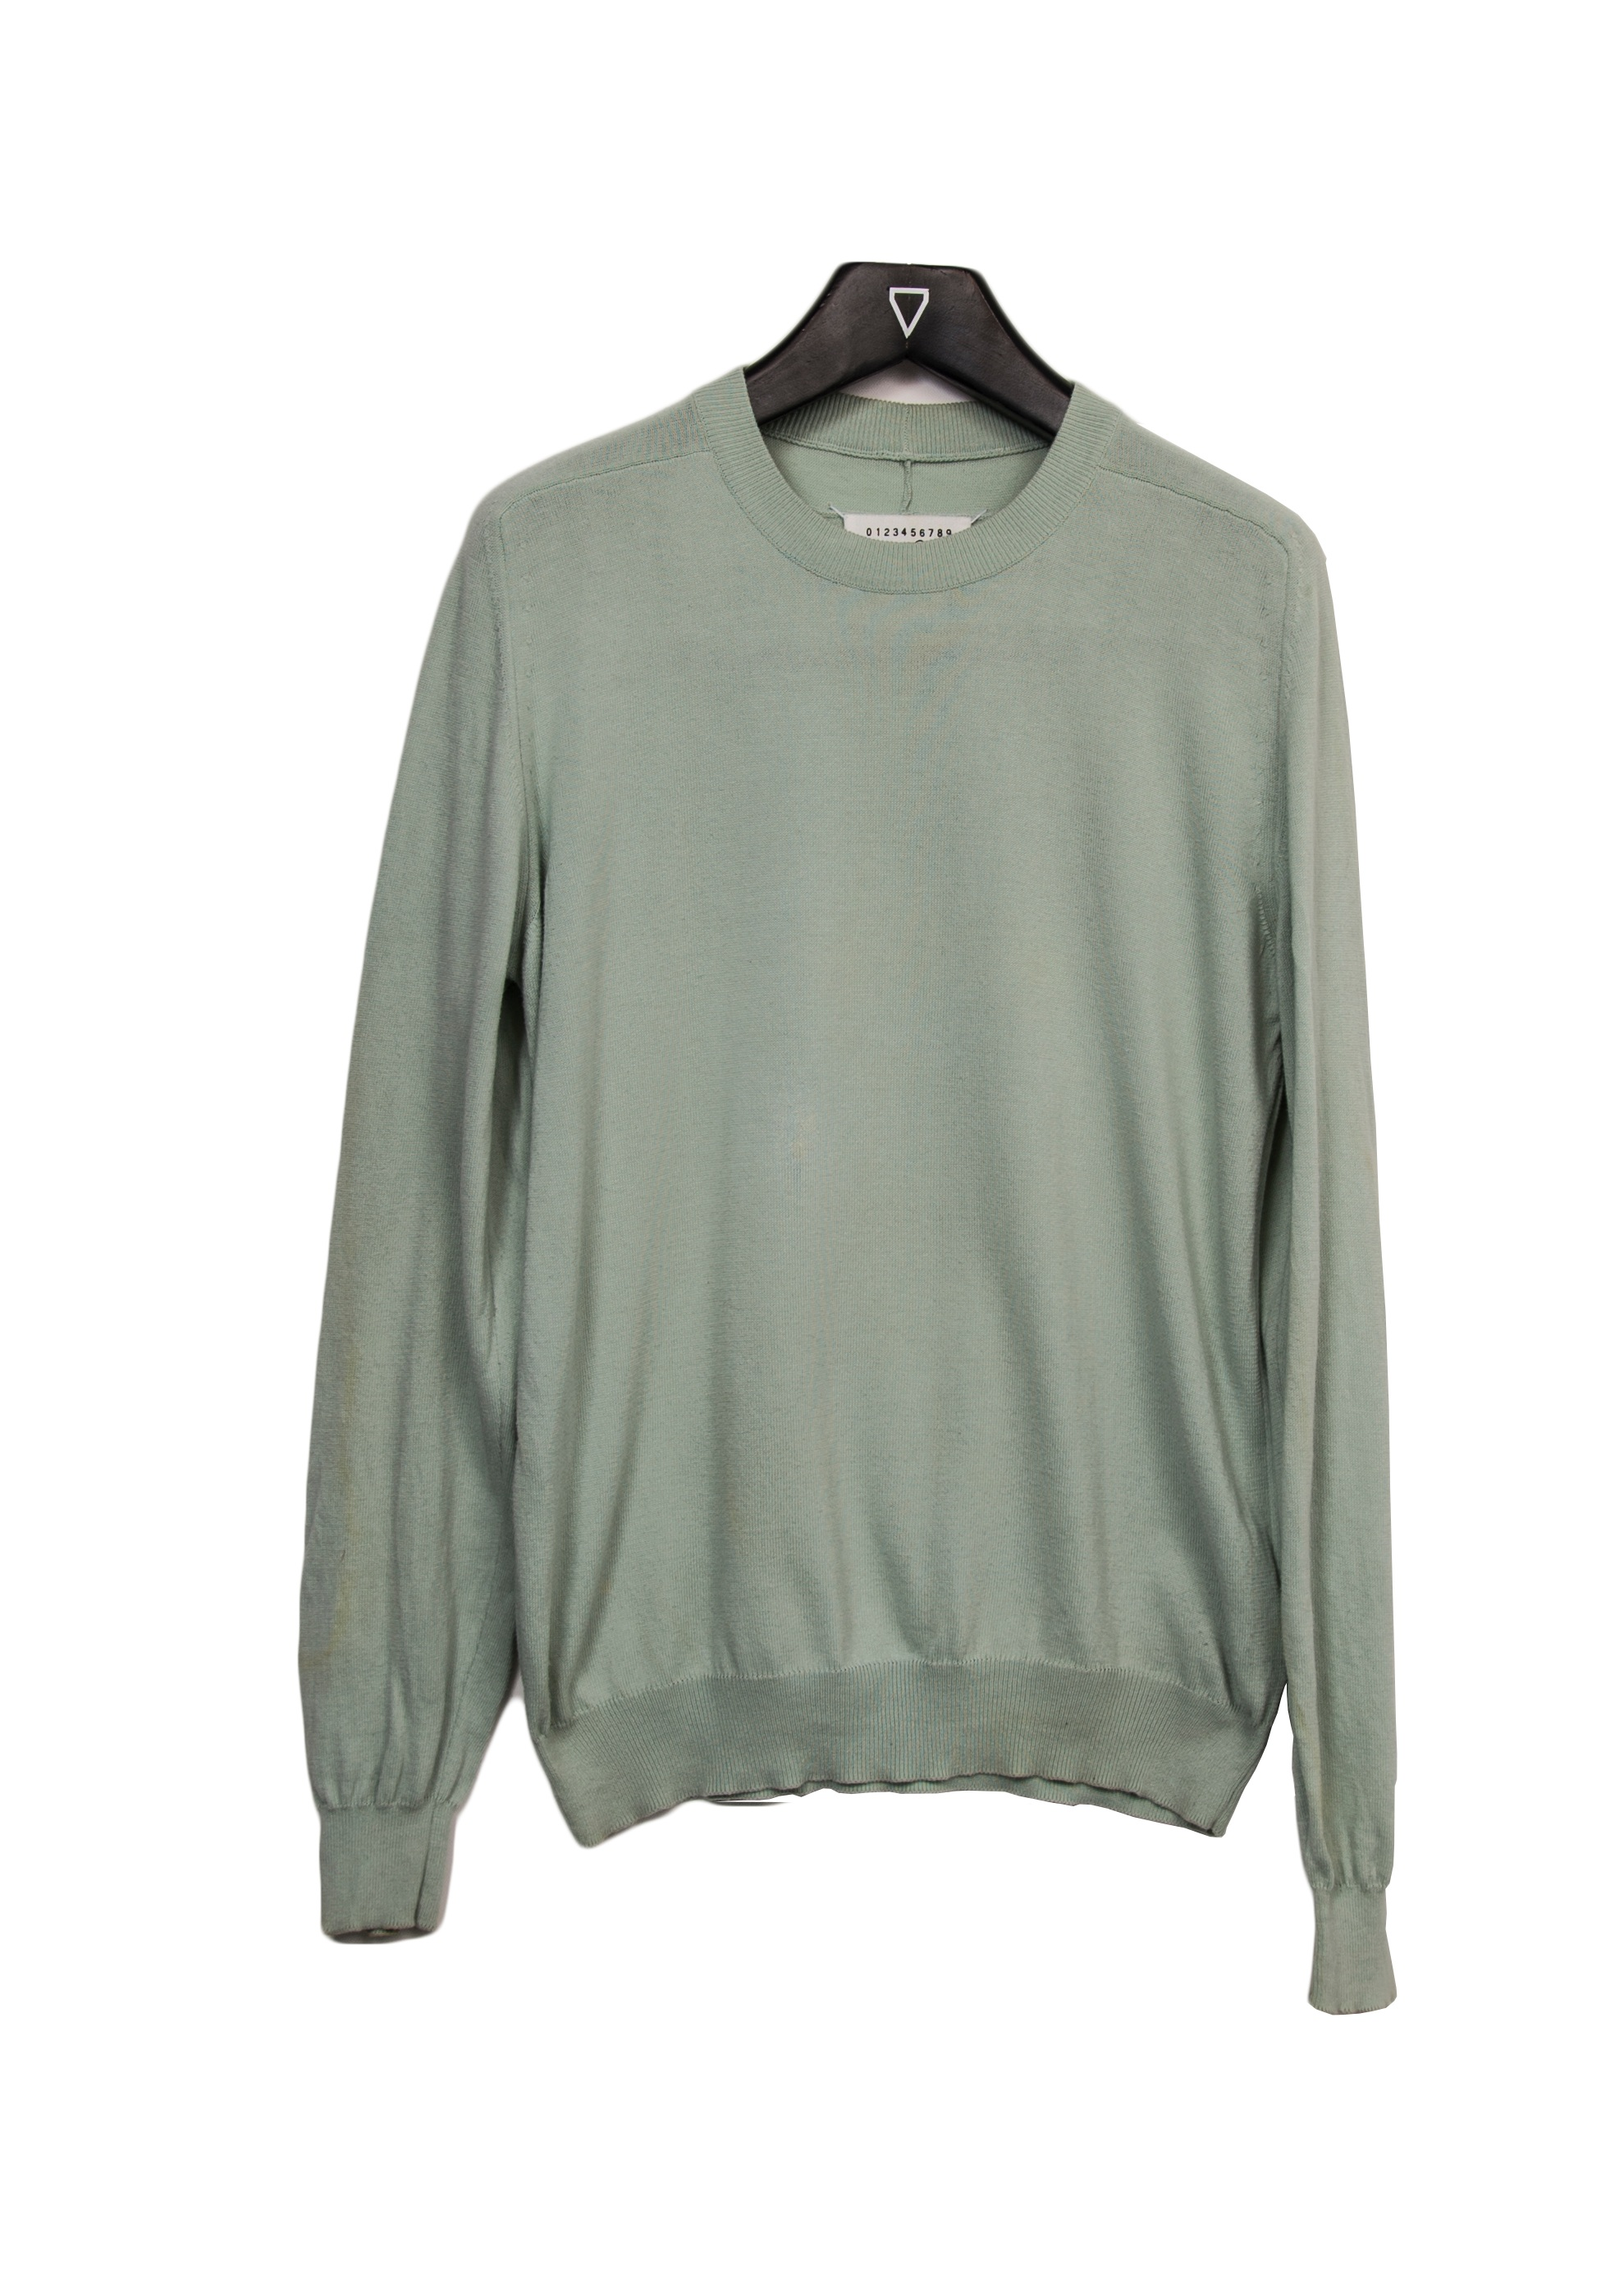 "40/42 MARGIELA SWEATER ""MARGIELA-KNT08"""